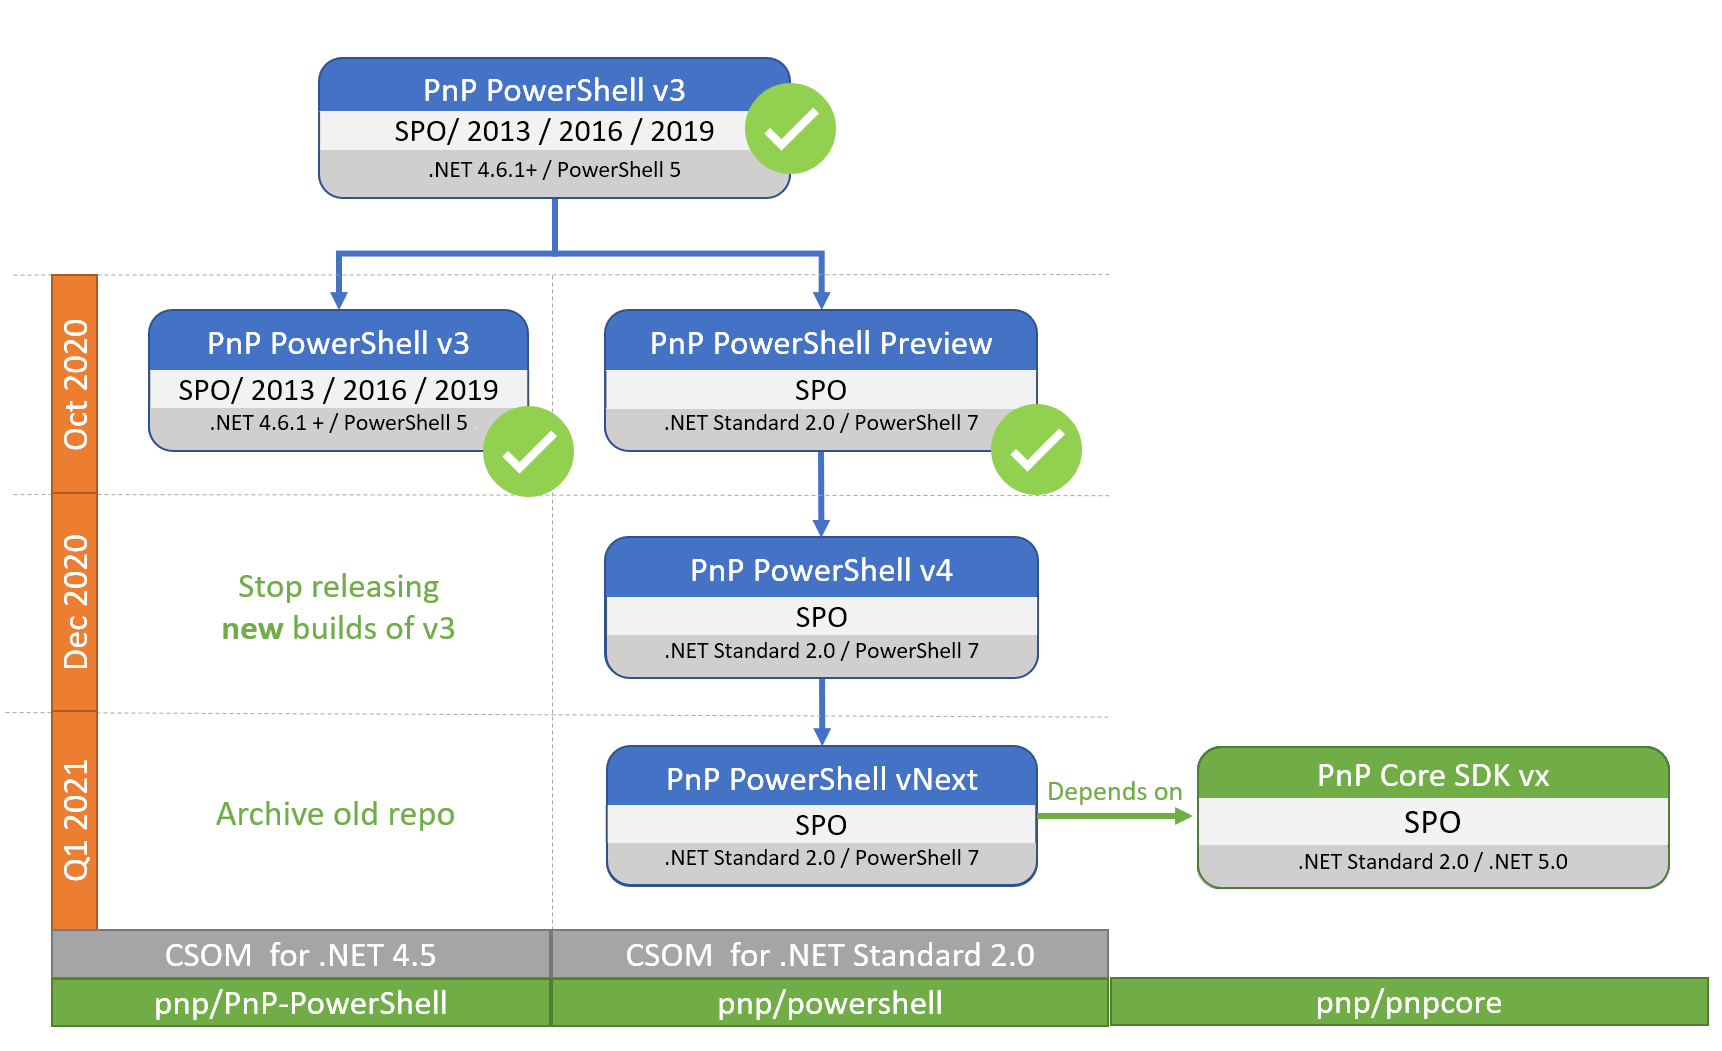 PnP PowerShell RoadMap